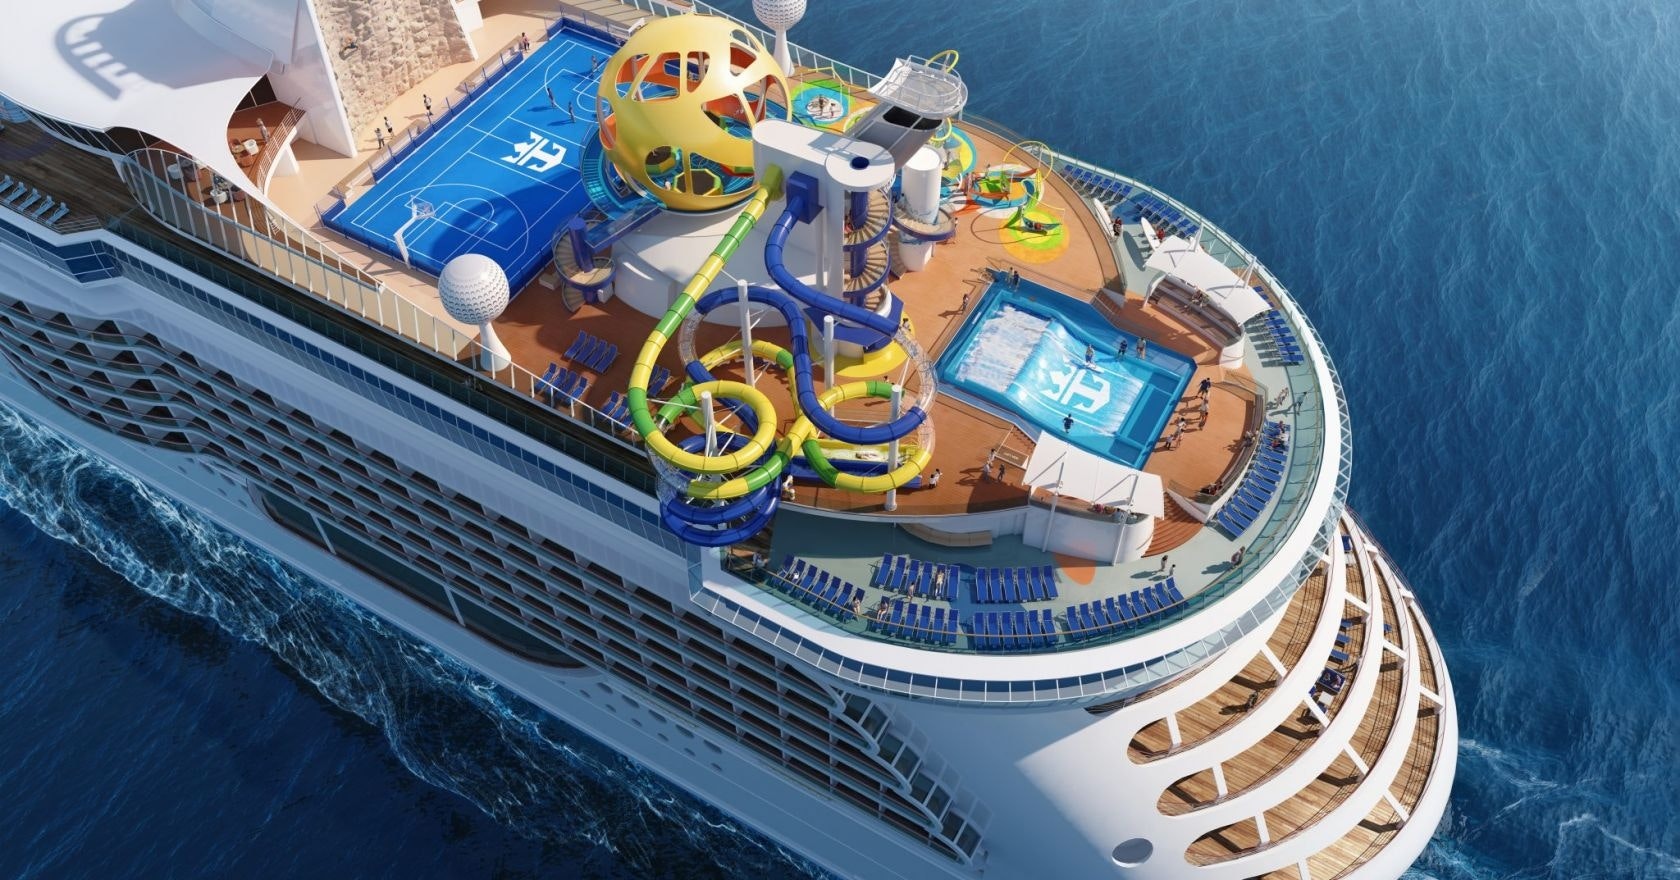 Win An Exciting Day Onboard A Cruise Ship With Royal Caribbean